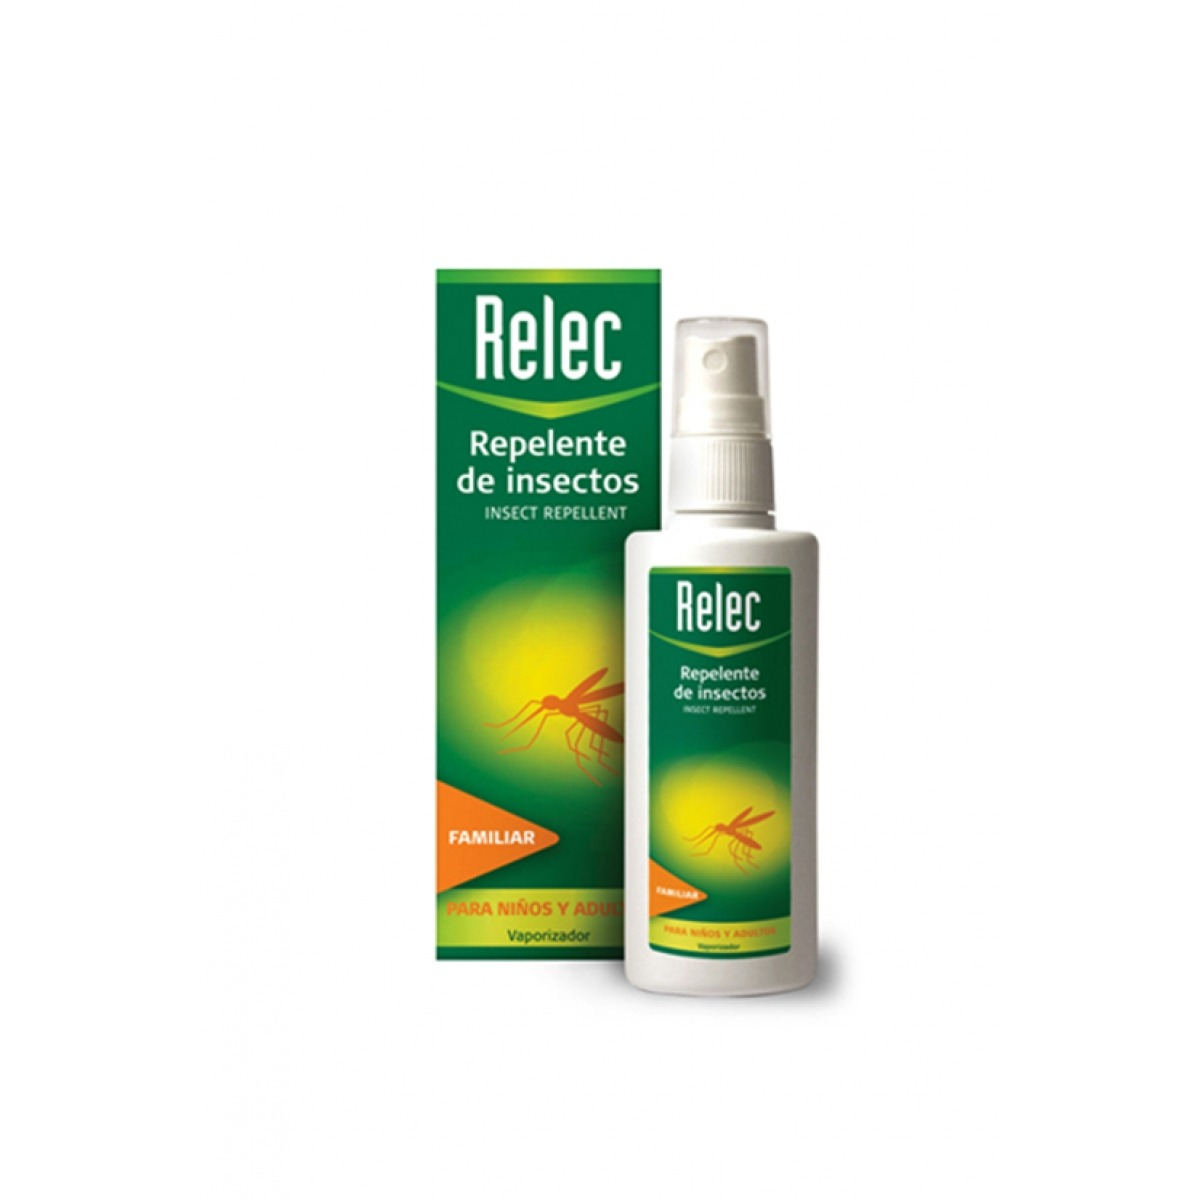 RELEC FAMILIAR REPELENTE DE INSECTOS SPRAY 50 ML